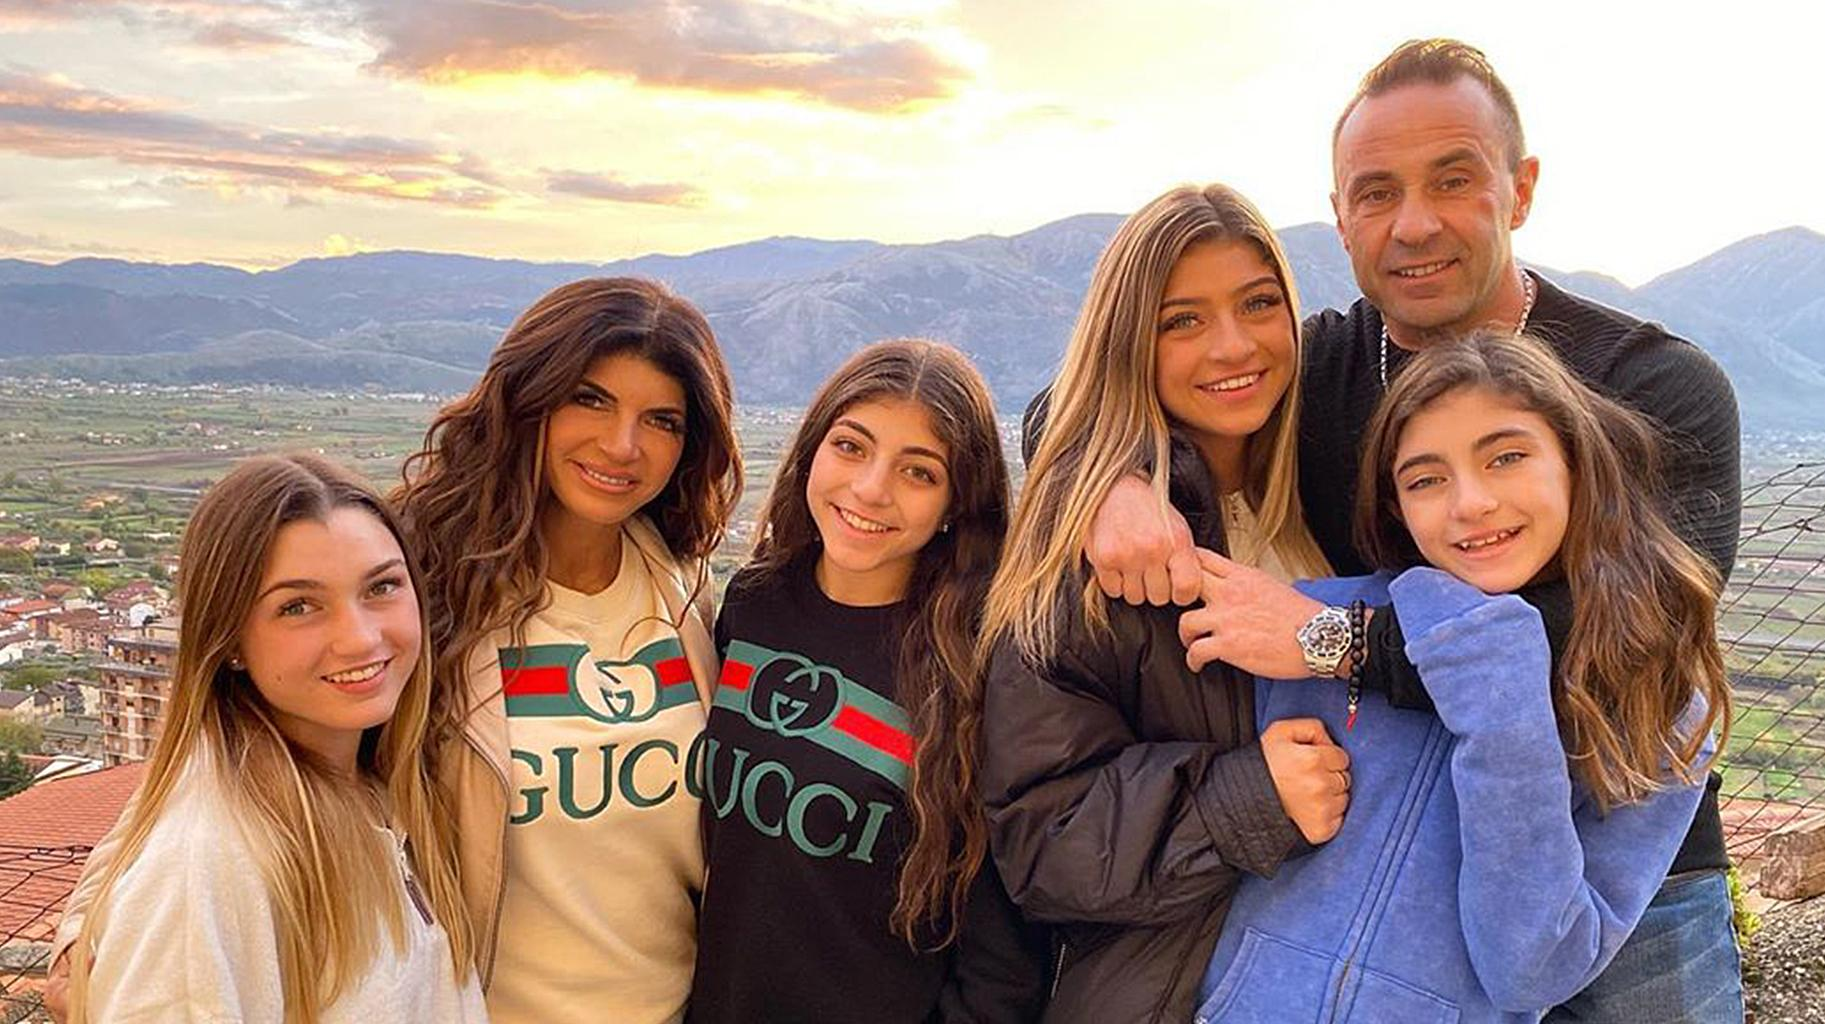 Joe Giudice Fires Back At Troll Calling Him A 'Failed Father' And Predicting His Daughters Will 'End Up On The Pole'